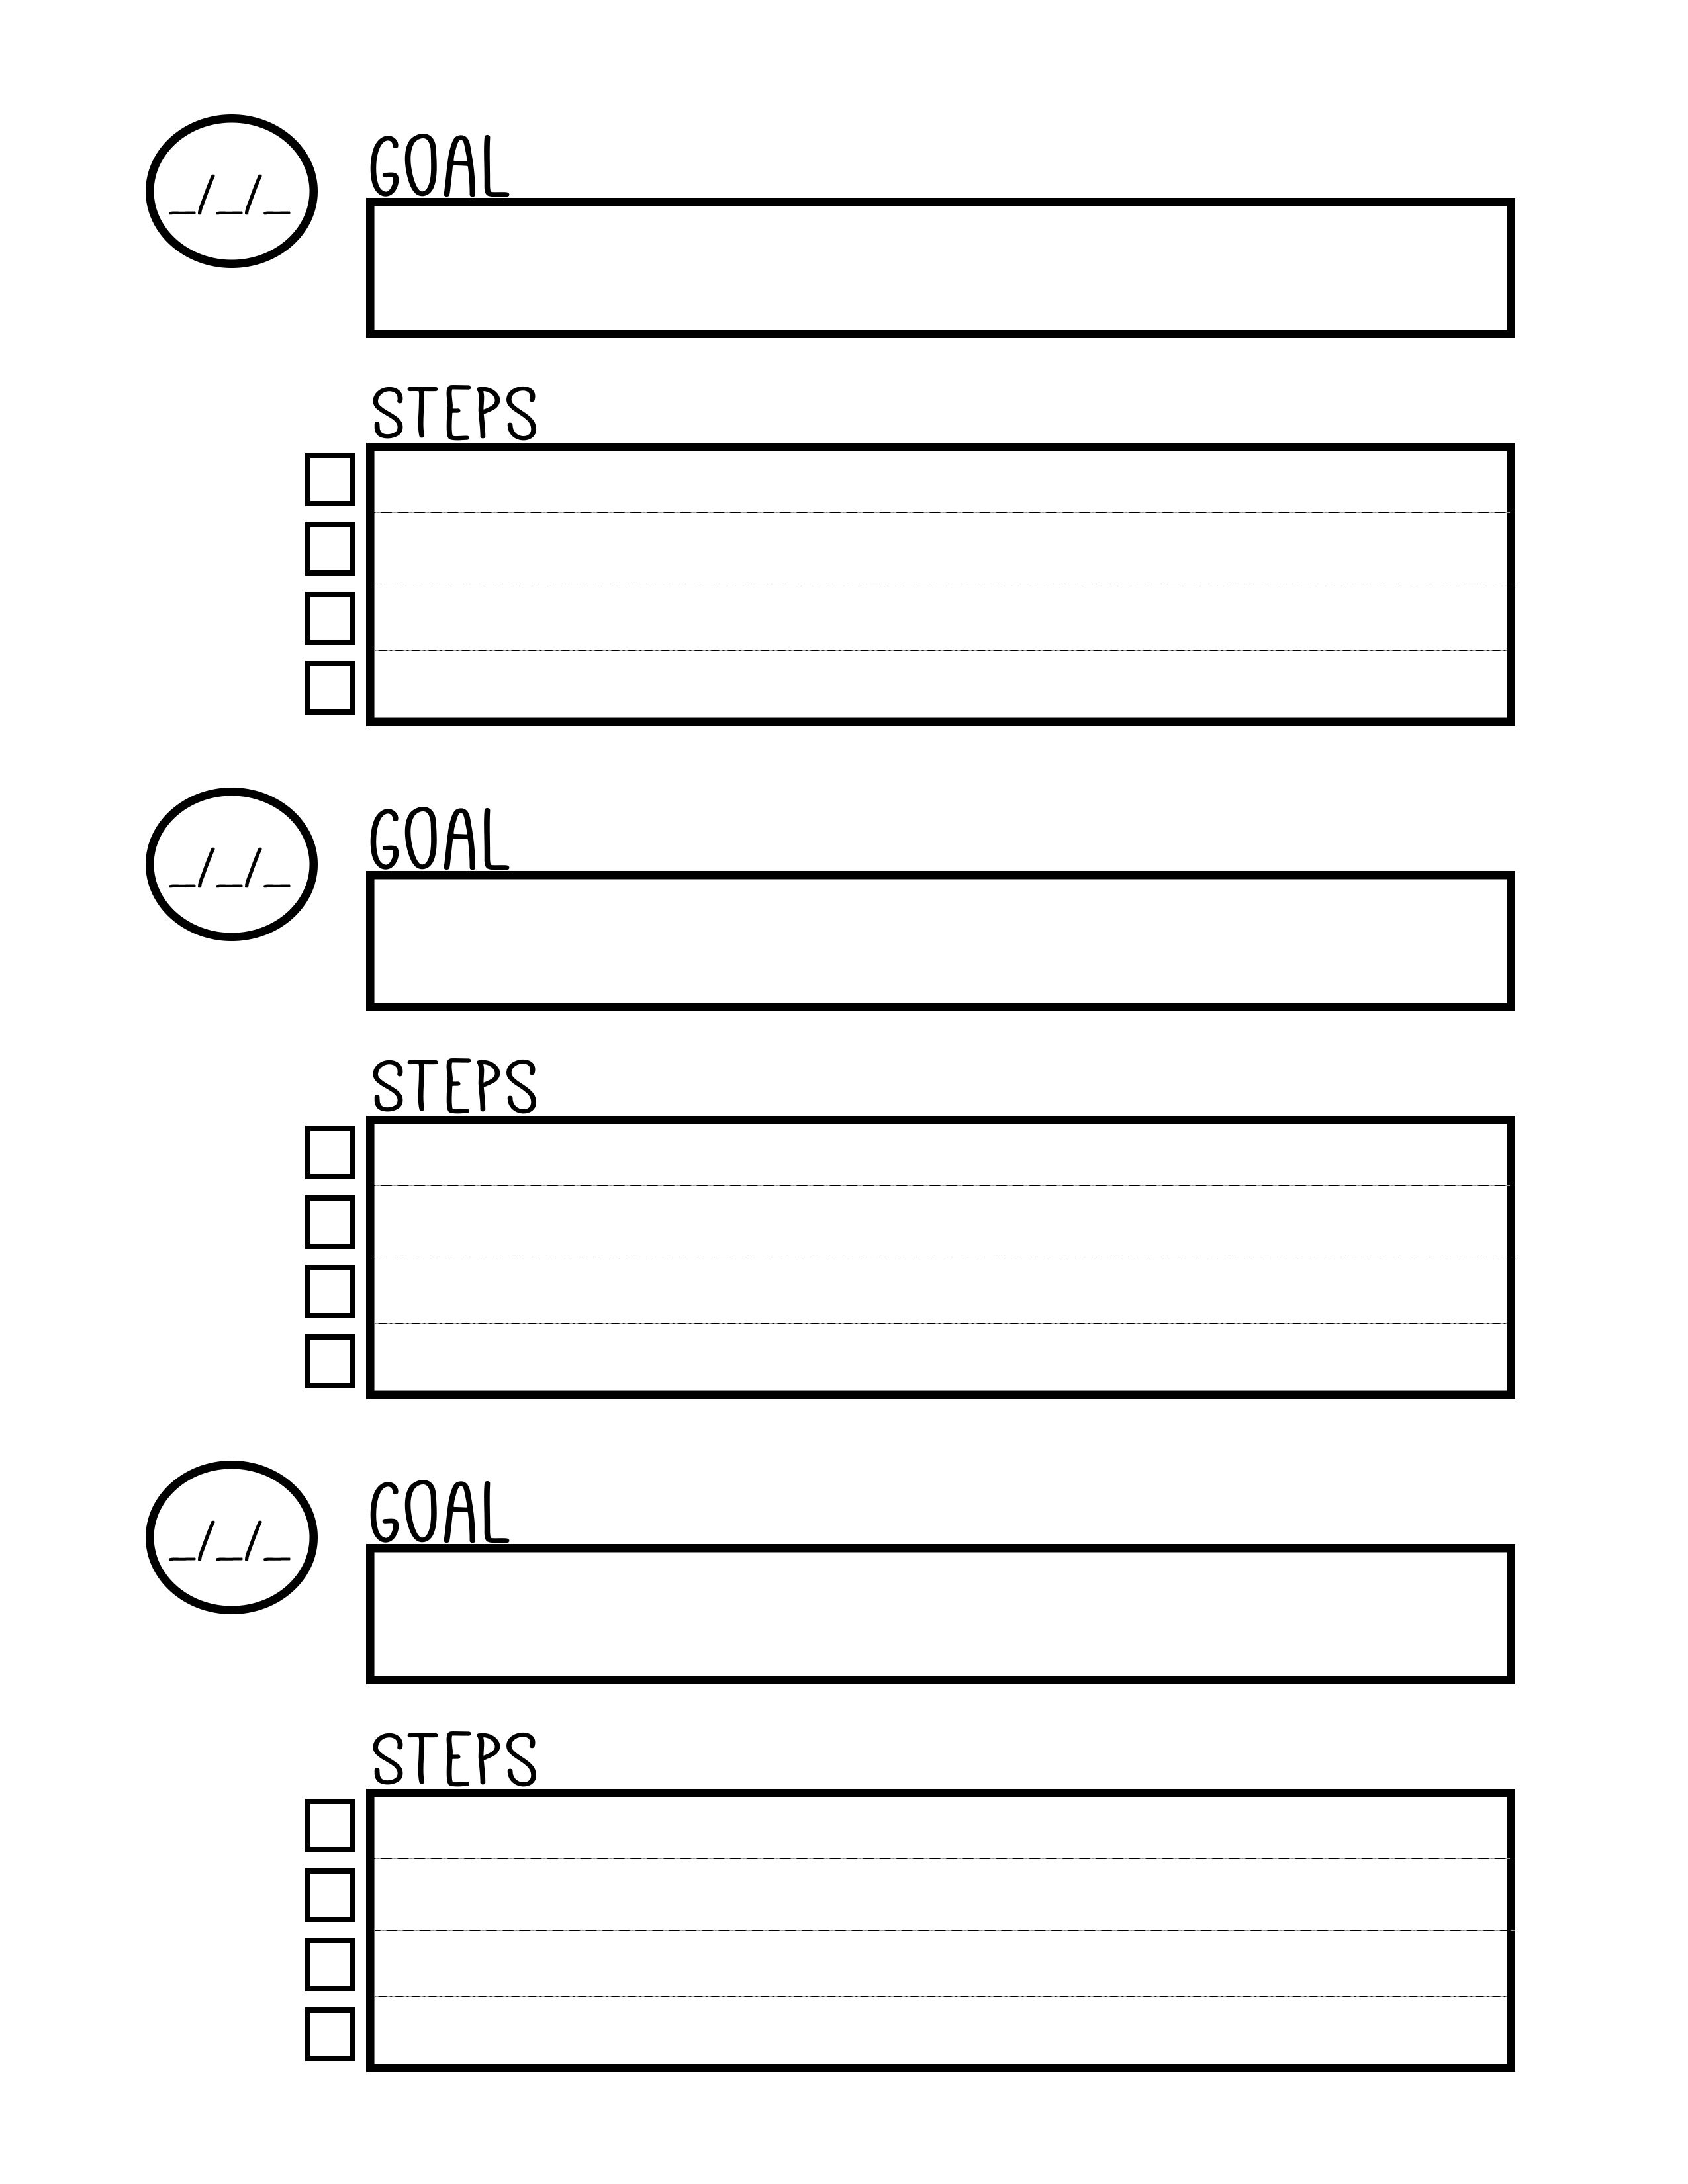 Free Printable Goal Setting Worksheet - Planner … | Education | Free Printable Goal Setting Worksheets For Students